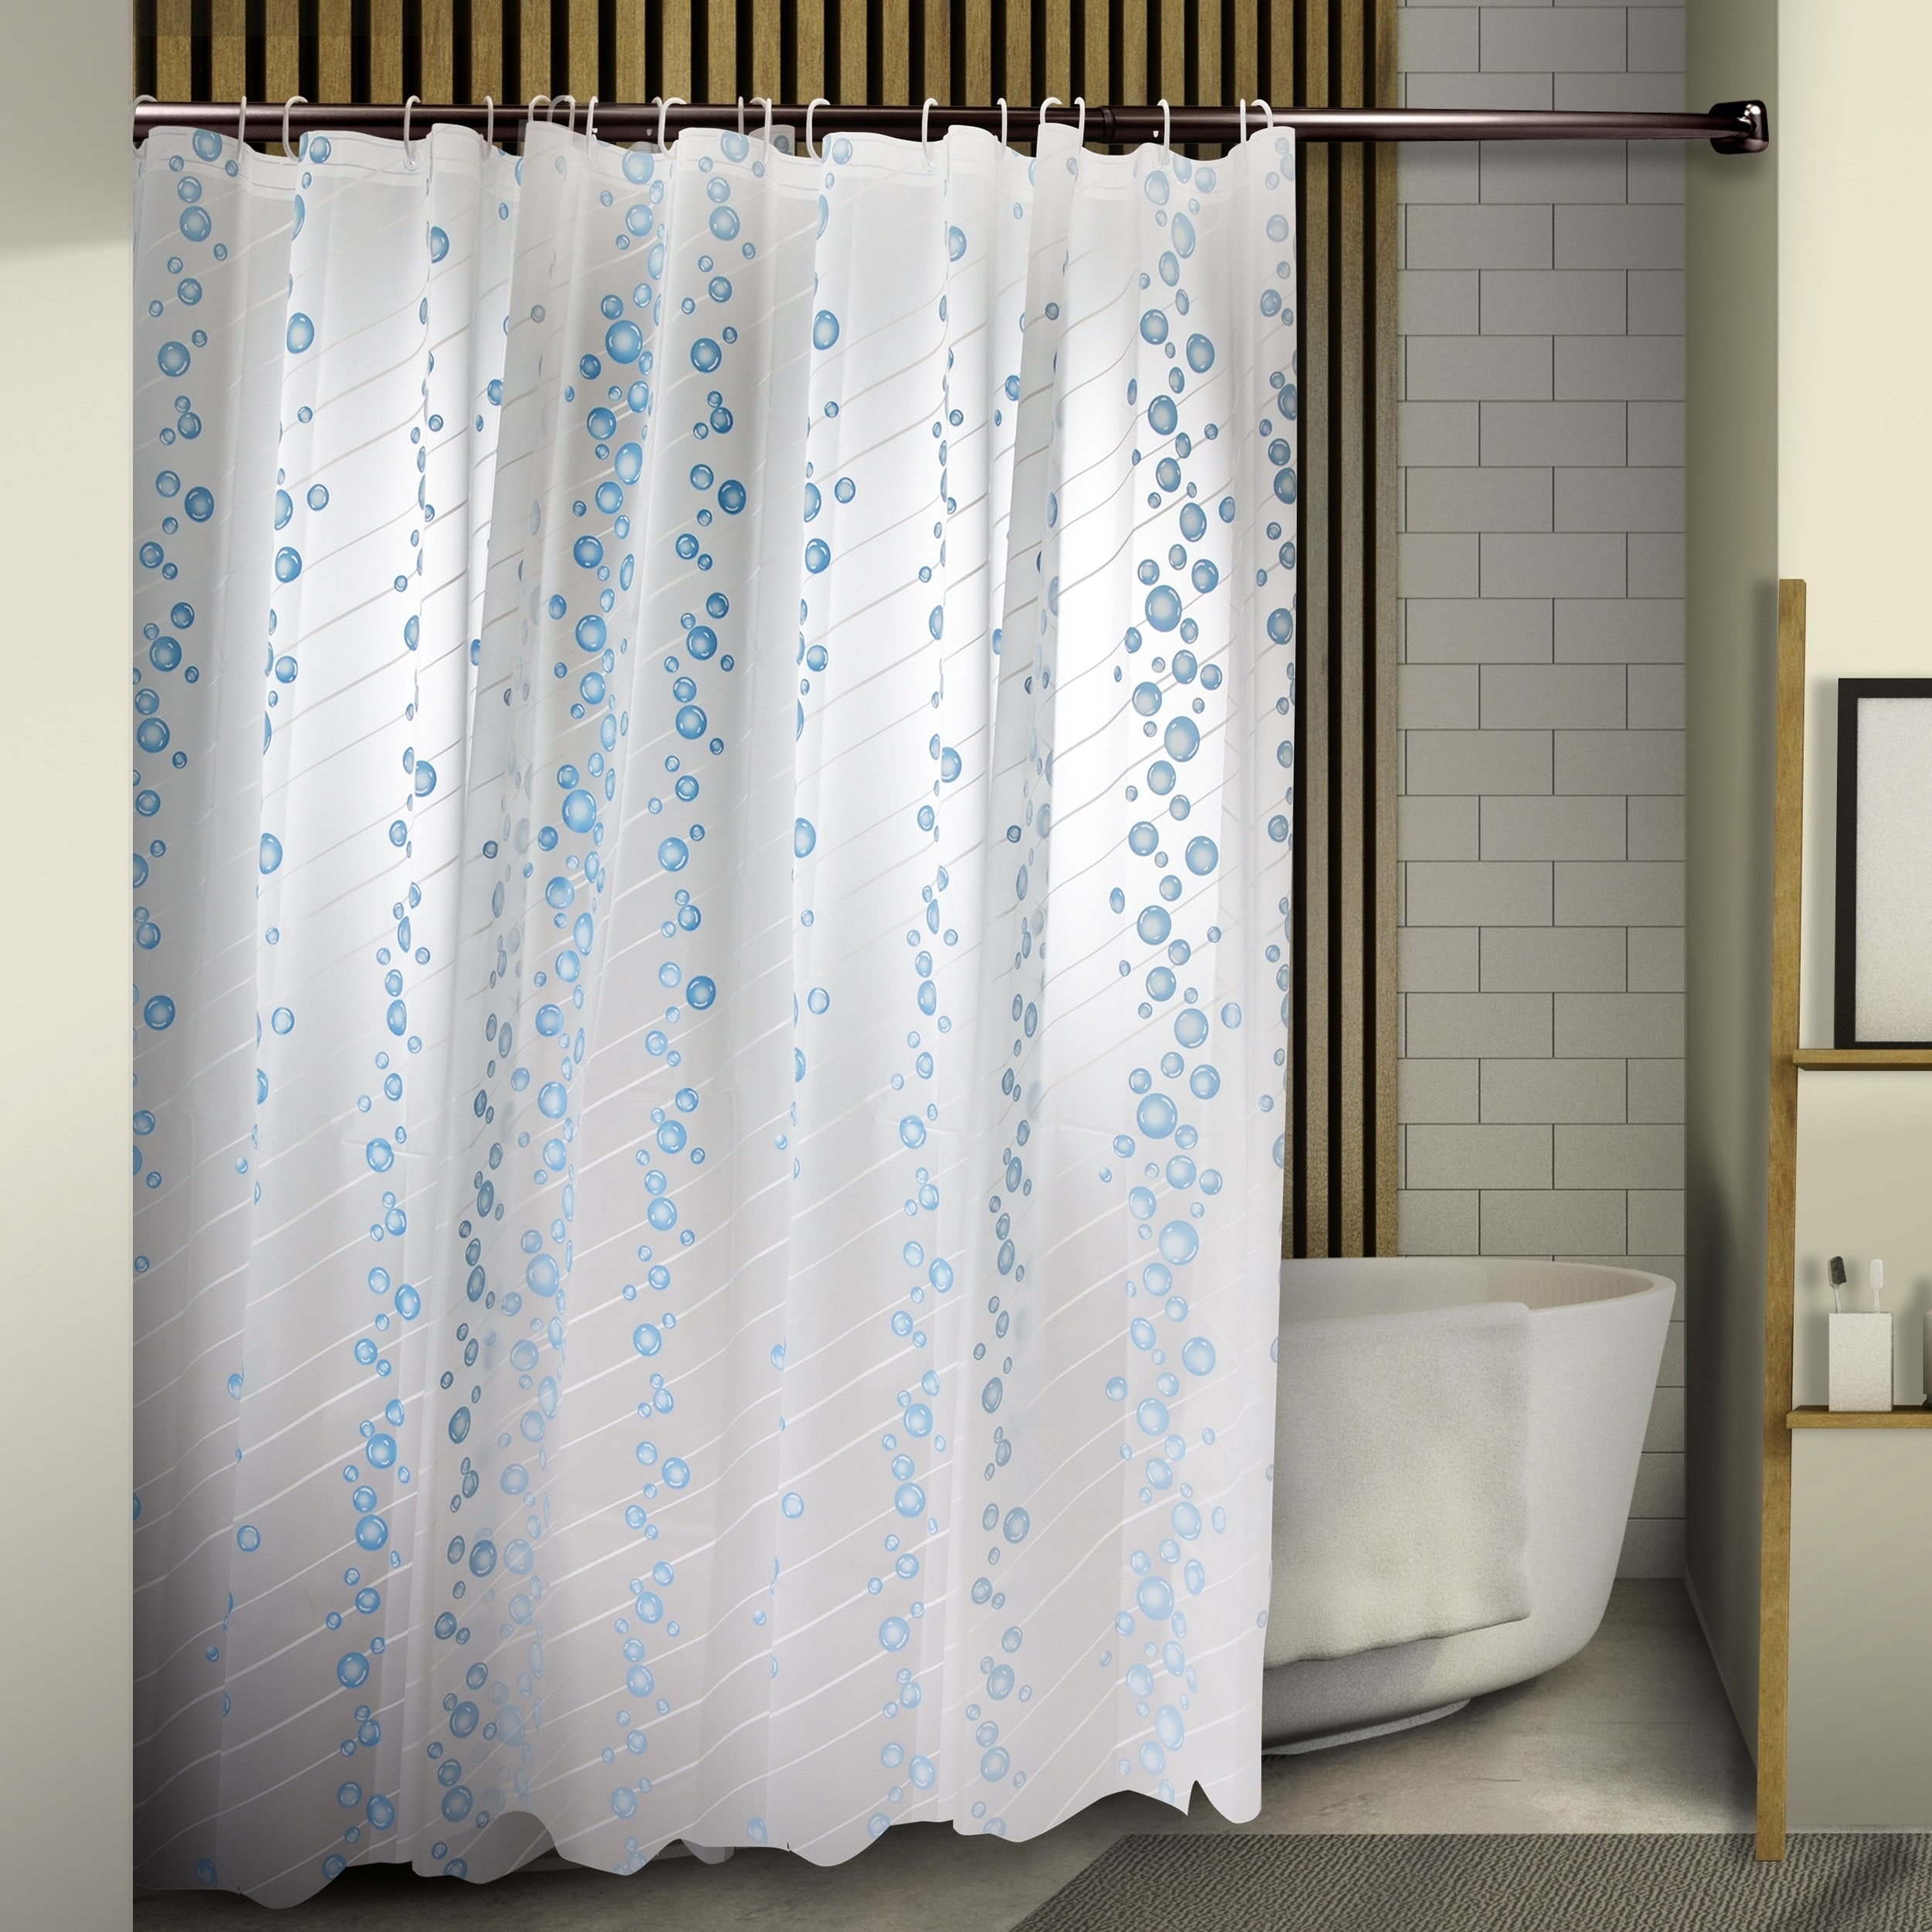 InStyleDesign Bubble Shower Curtain 71 X